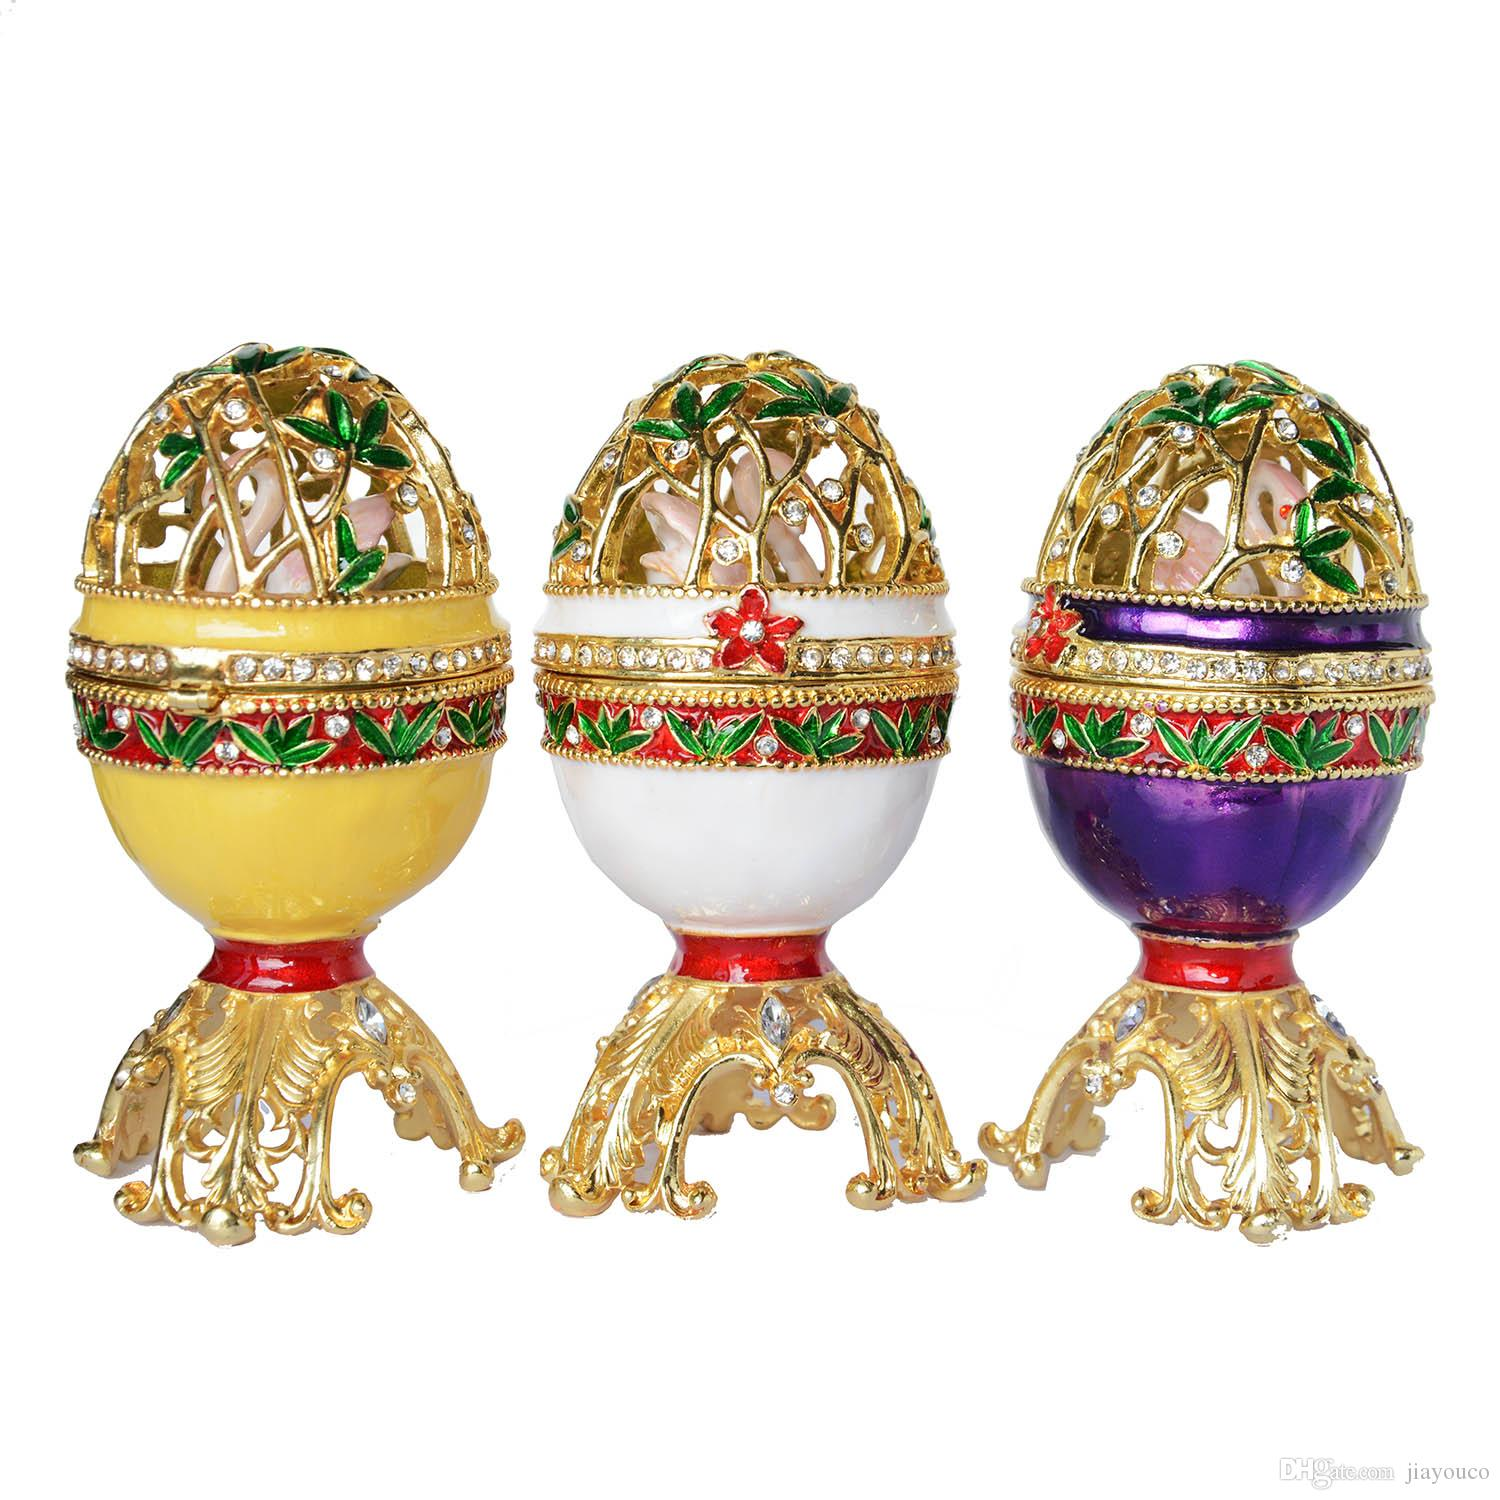 2018 russian craft faberge style easter egg w swan bejeweled trinket 2018 russian craft faberge style easter egg w swan bejeweled trinket box metal jewelry box home decor sculpture christmas gifts from jiayouco negle Choice Image